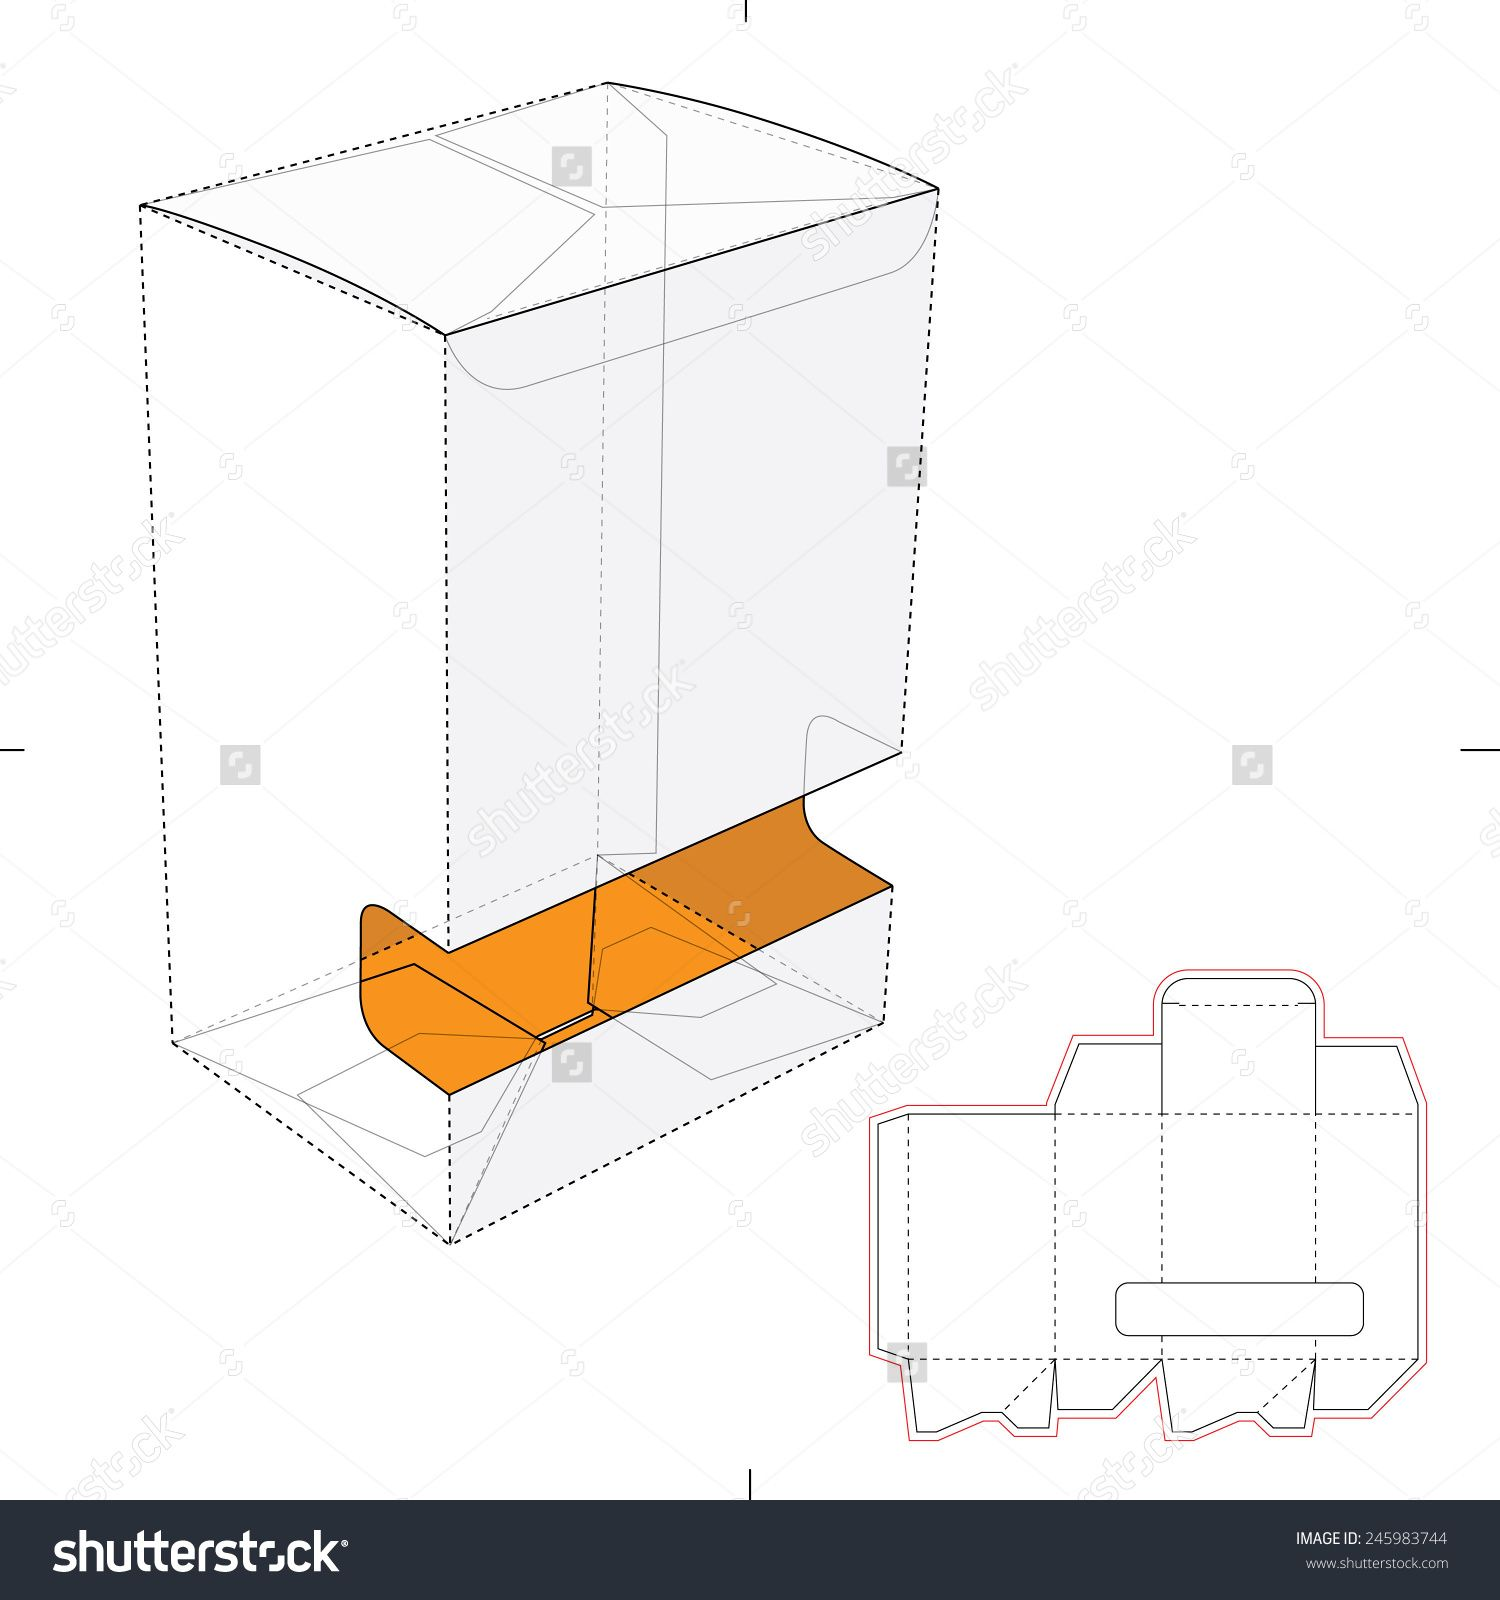 Gravity Fed Dispenser Box With Die Cut Template Stock Vector